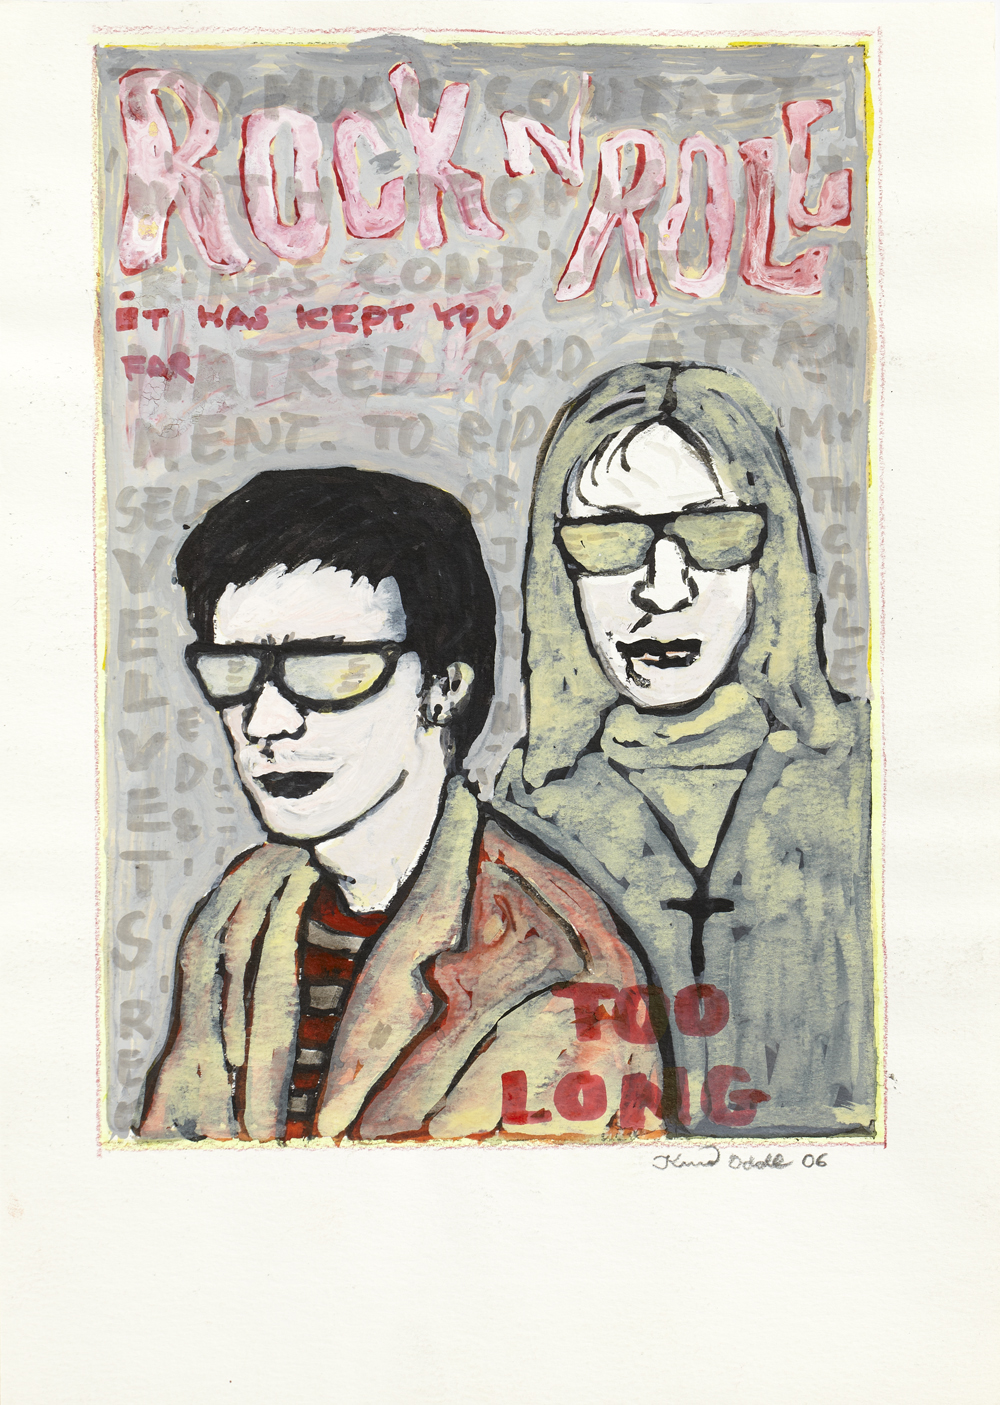 Paper_Lou Reed with John Call_29,5x21cm_Gouache, pen_2006